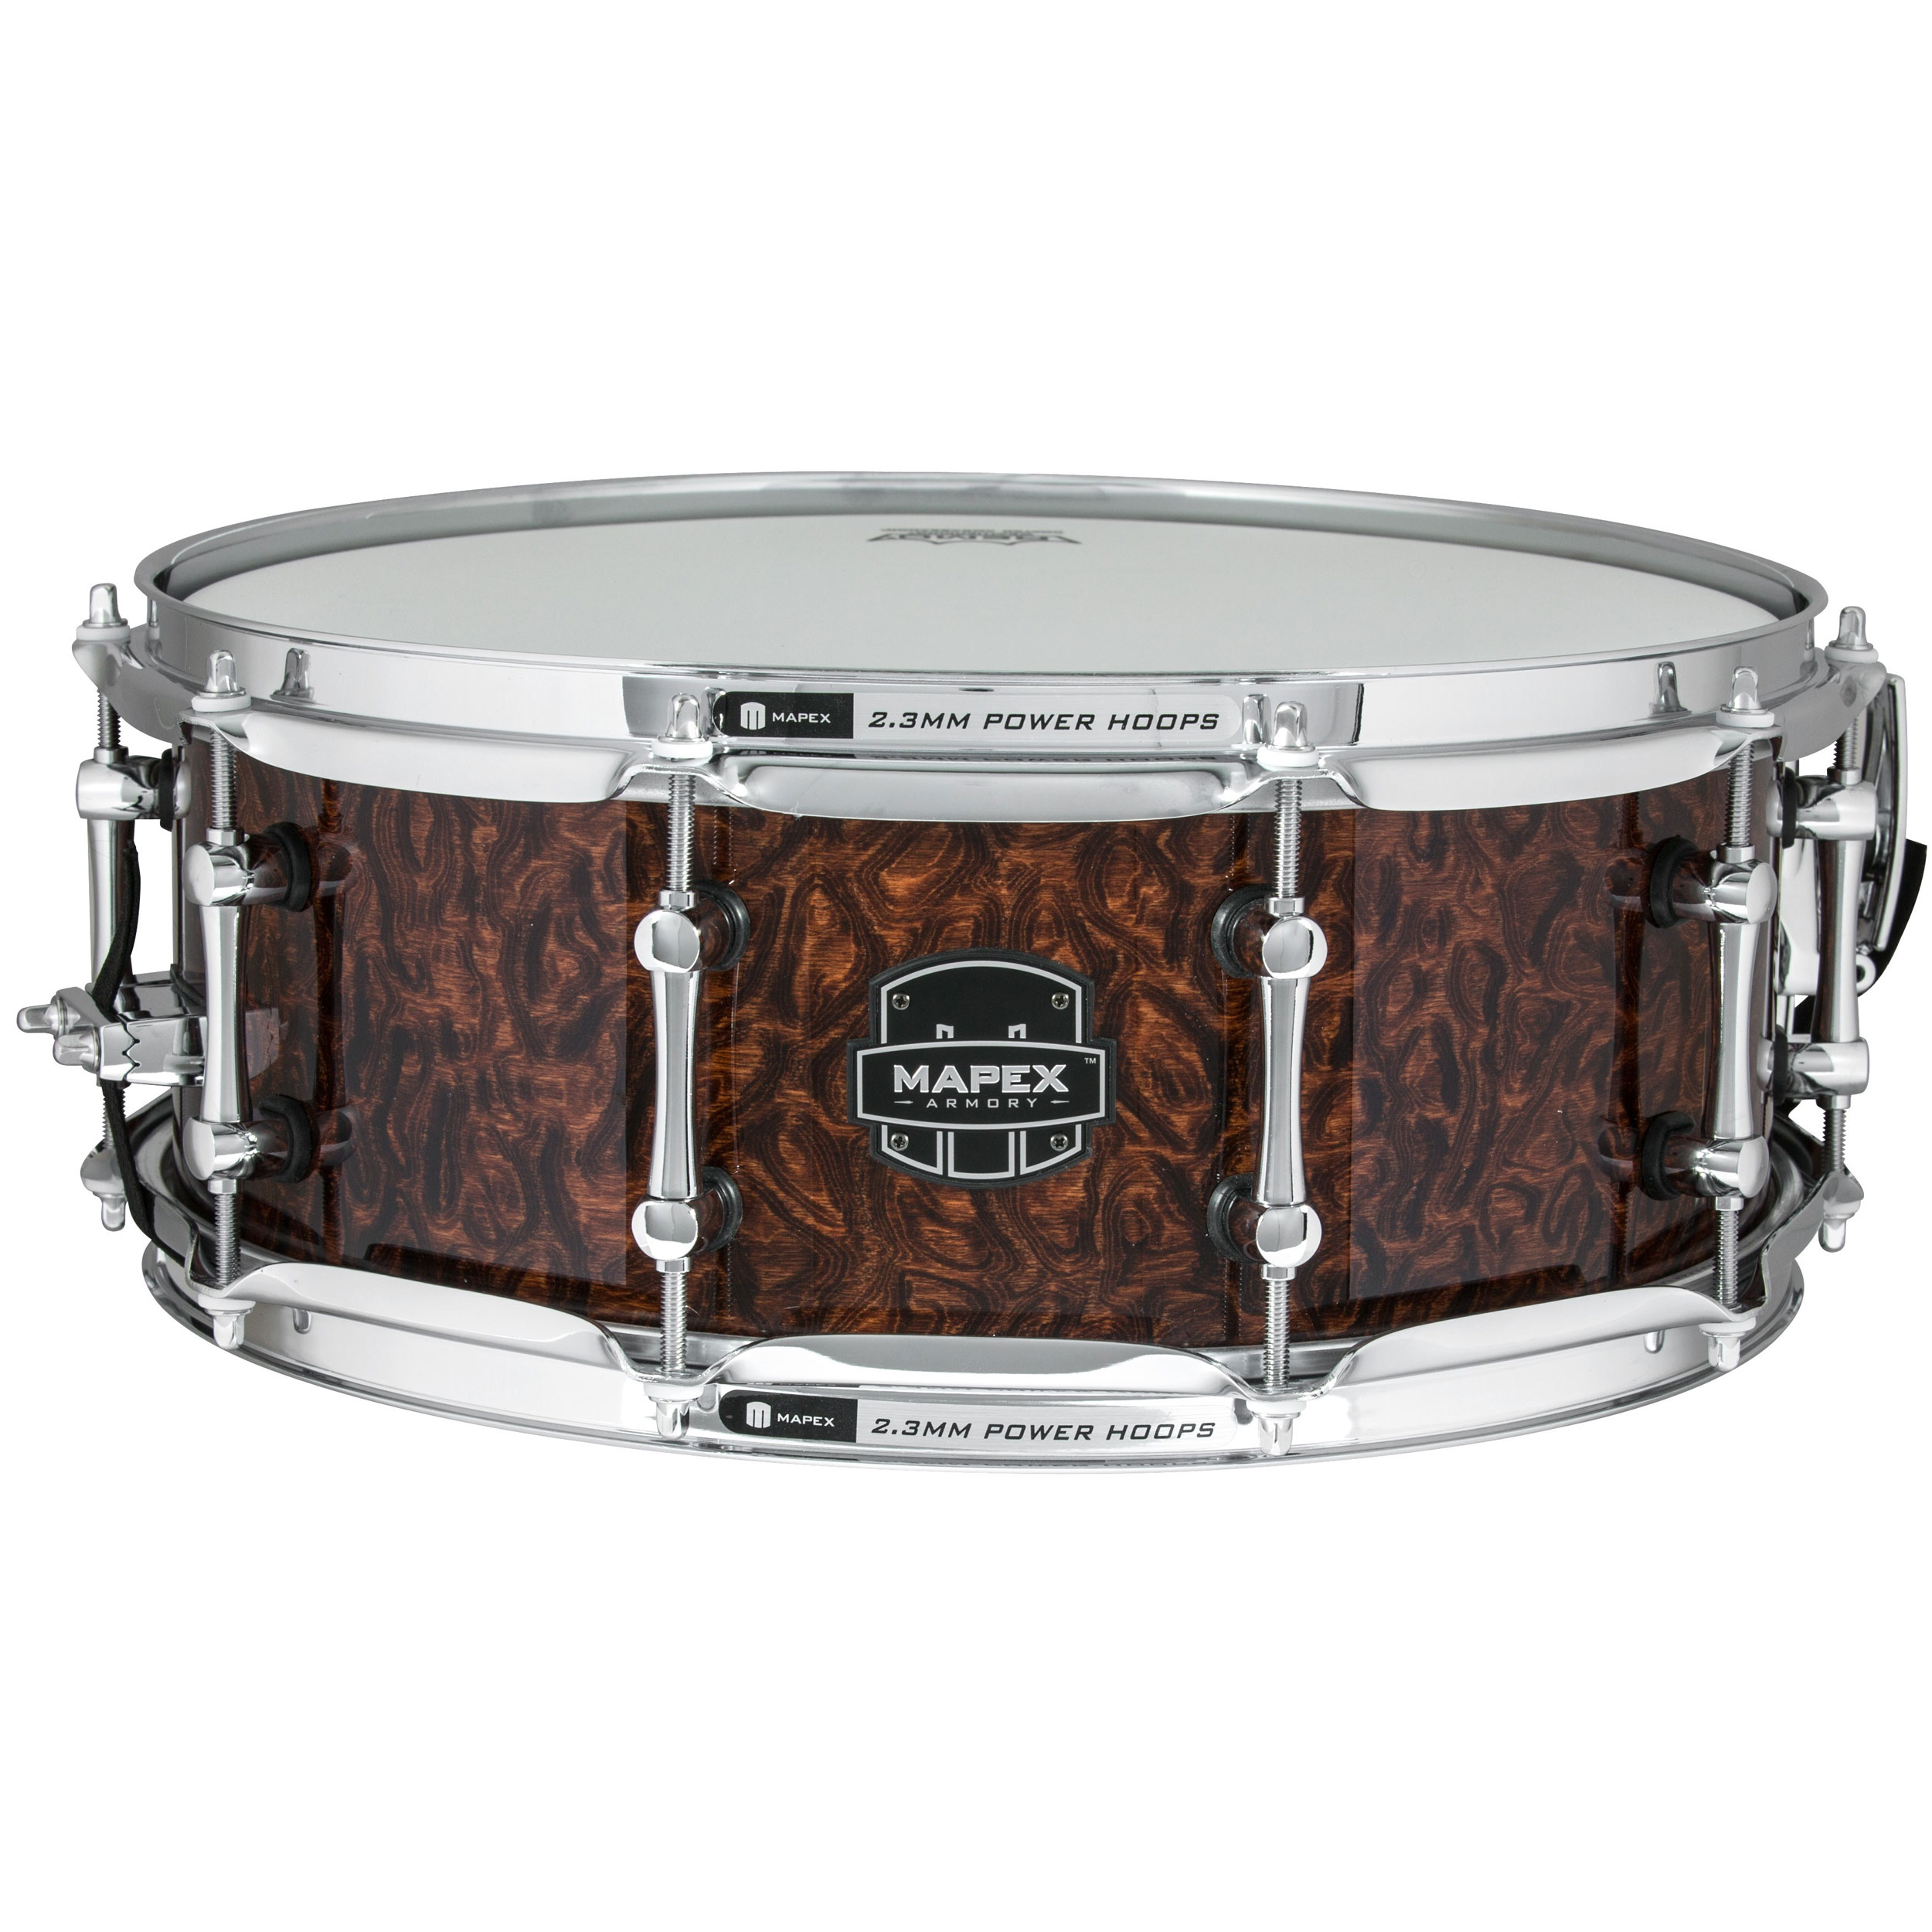 "Mapex 5.5"" x 14"" Armory Dillinger Maple Snare Drum"